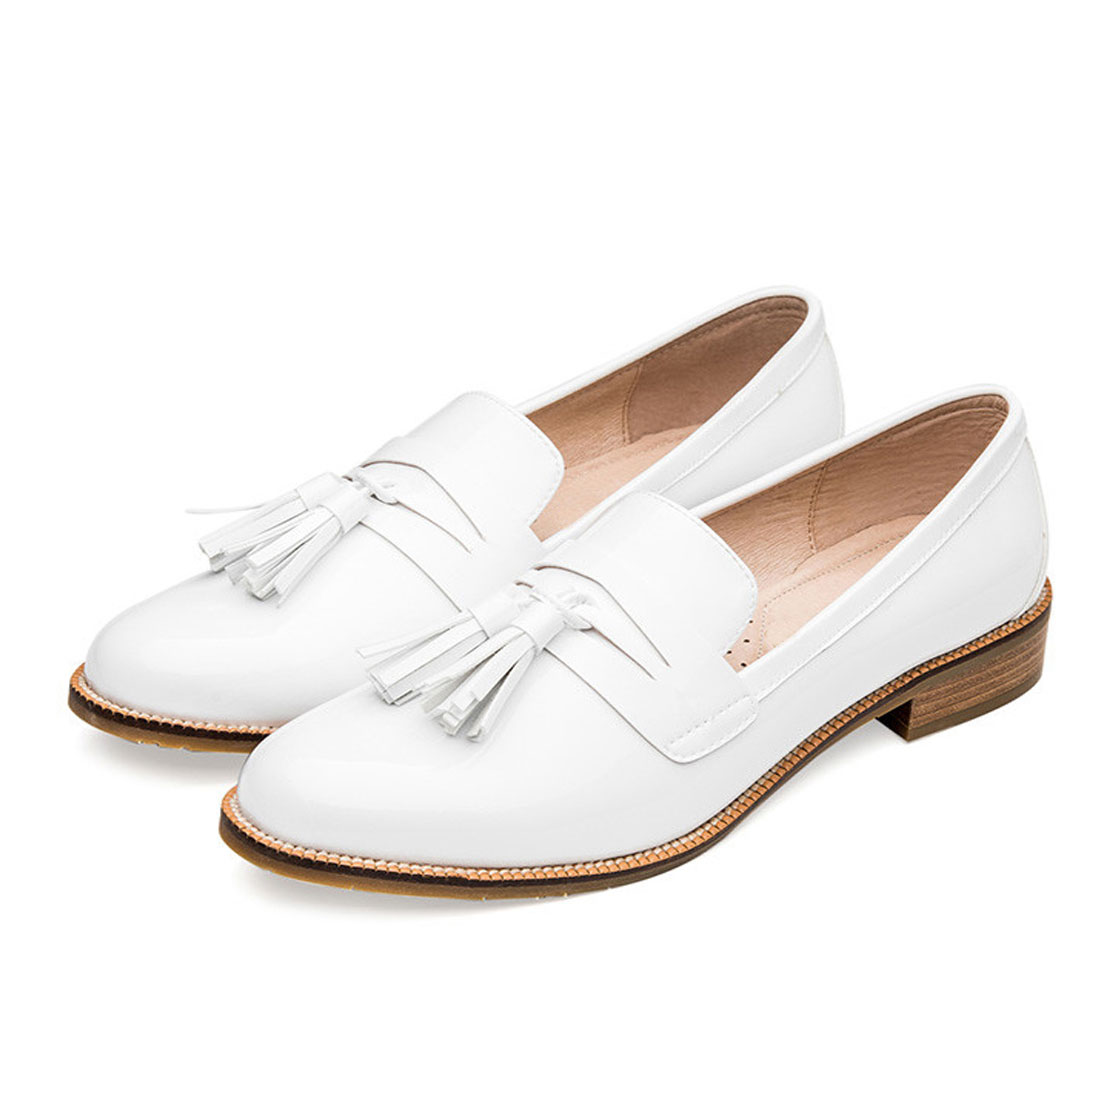 white casual flat women shoes China factory ladies flat shoes YH1223